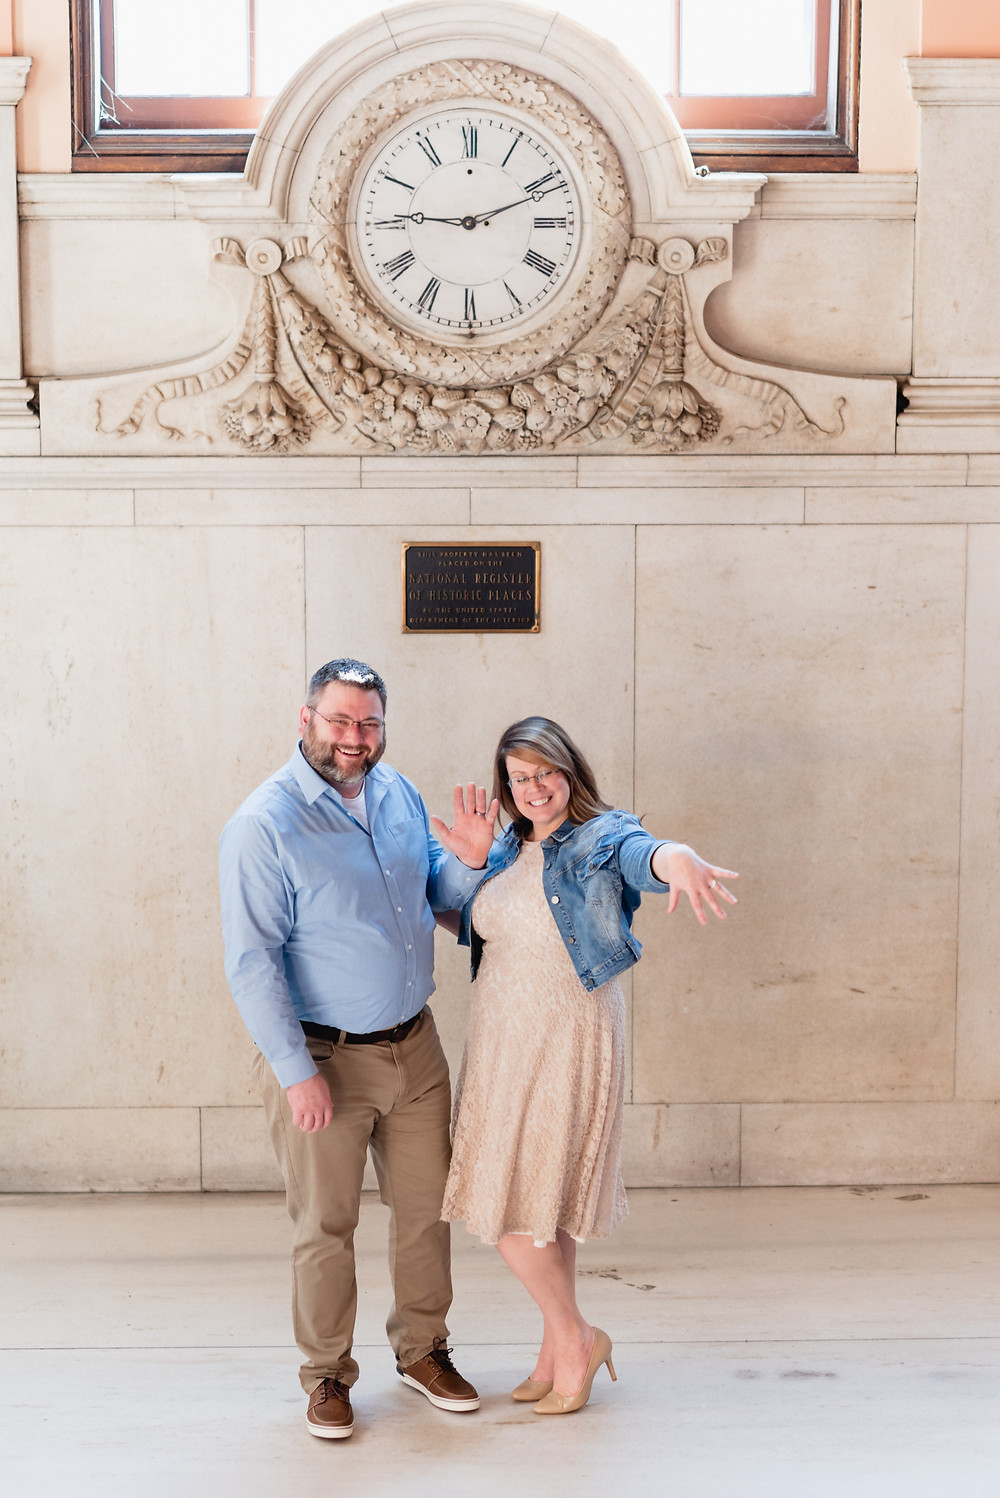 couple showing off their new wedding rings for the camera in front of grand clock